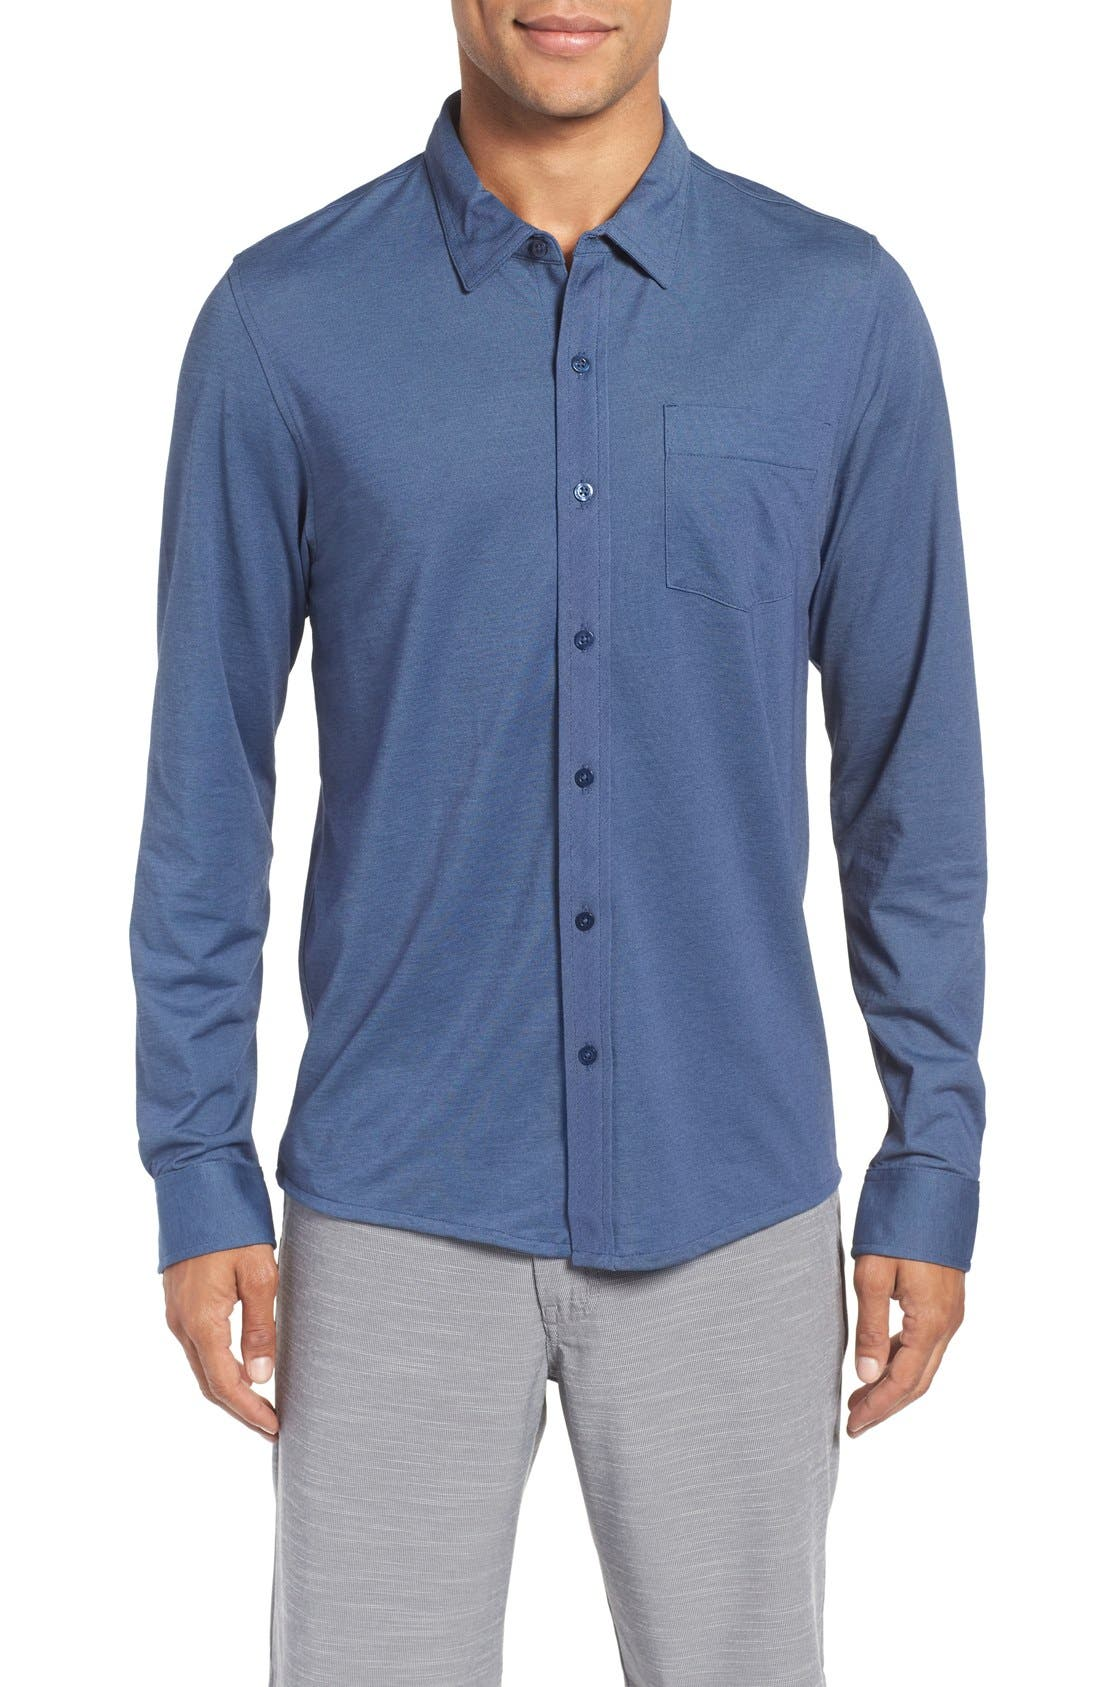 Trip'Slim Fit Wrinkle Free Sport Shirt,                         Main,                         color, Iris